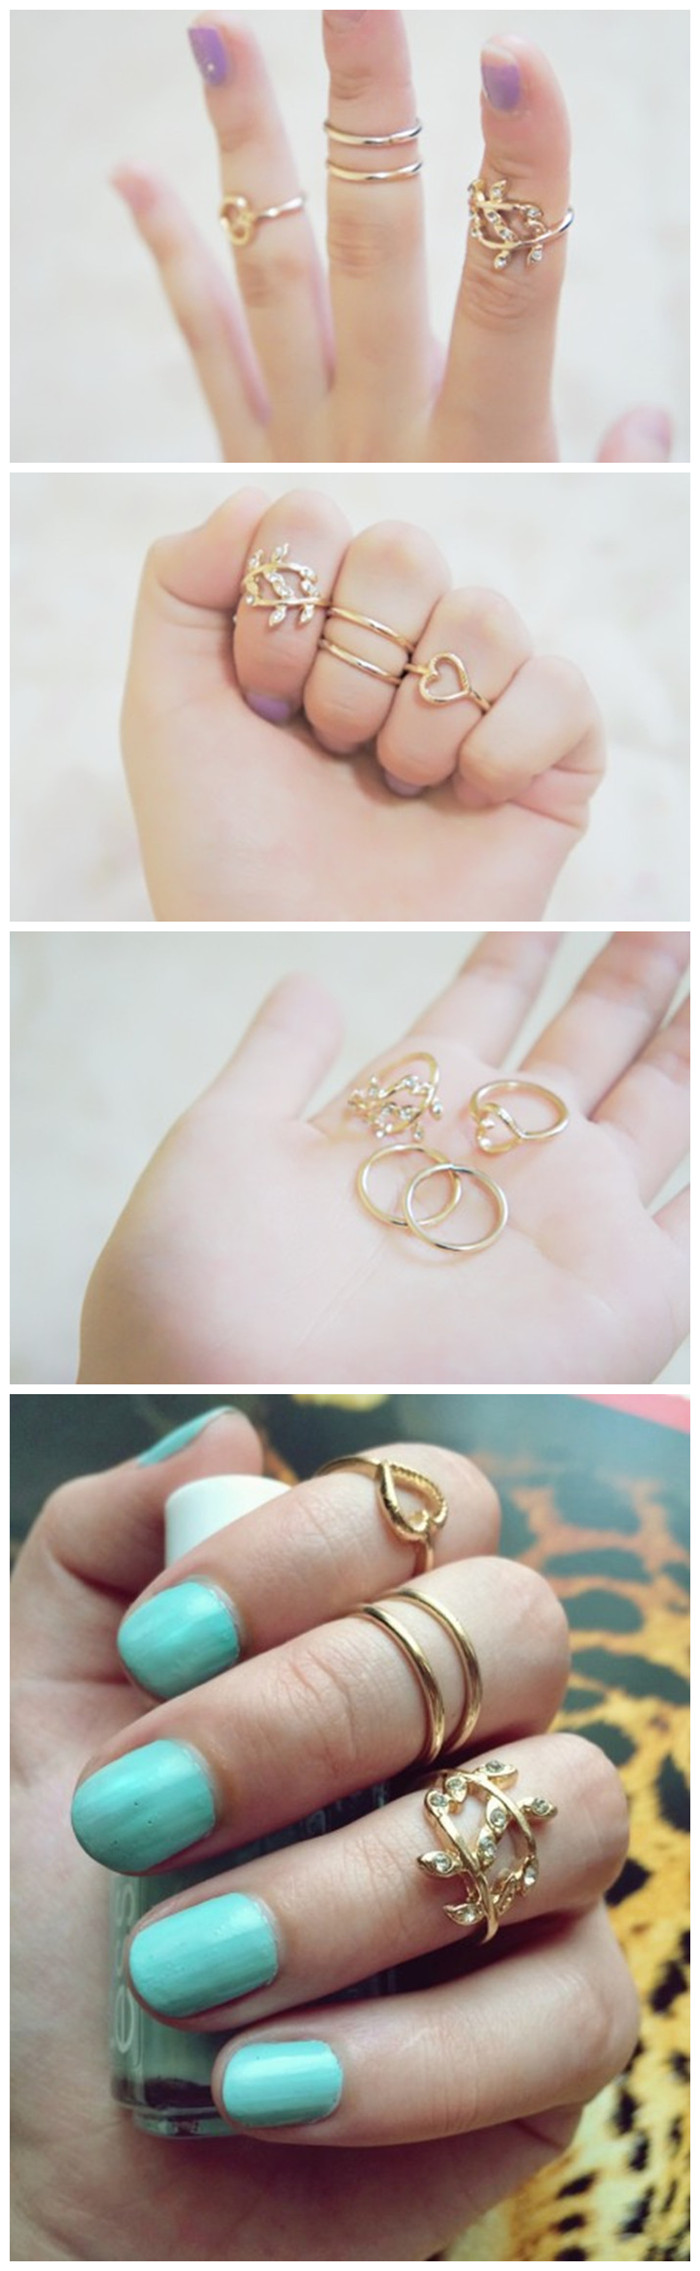 $2.83 4Pcs/set Ring Cute Heart & Leaf Shaped Ring Boho Ring Gold Plated Ring - BornPrettyStore.com